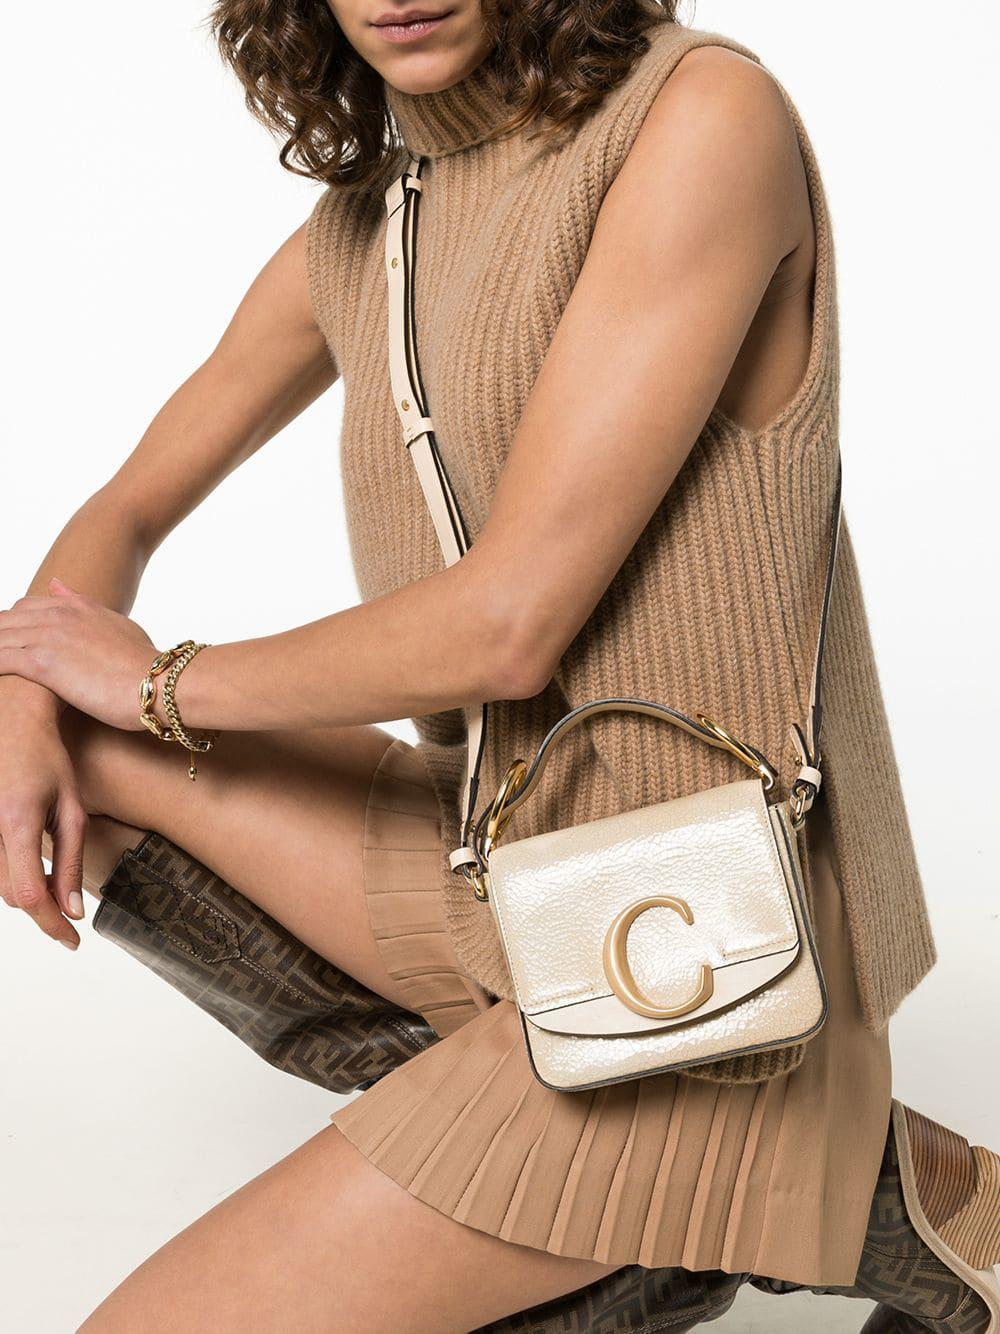 76396572e32 Chloé Beige C Ring Small Leather Shoulder Bag in White - Lyst